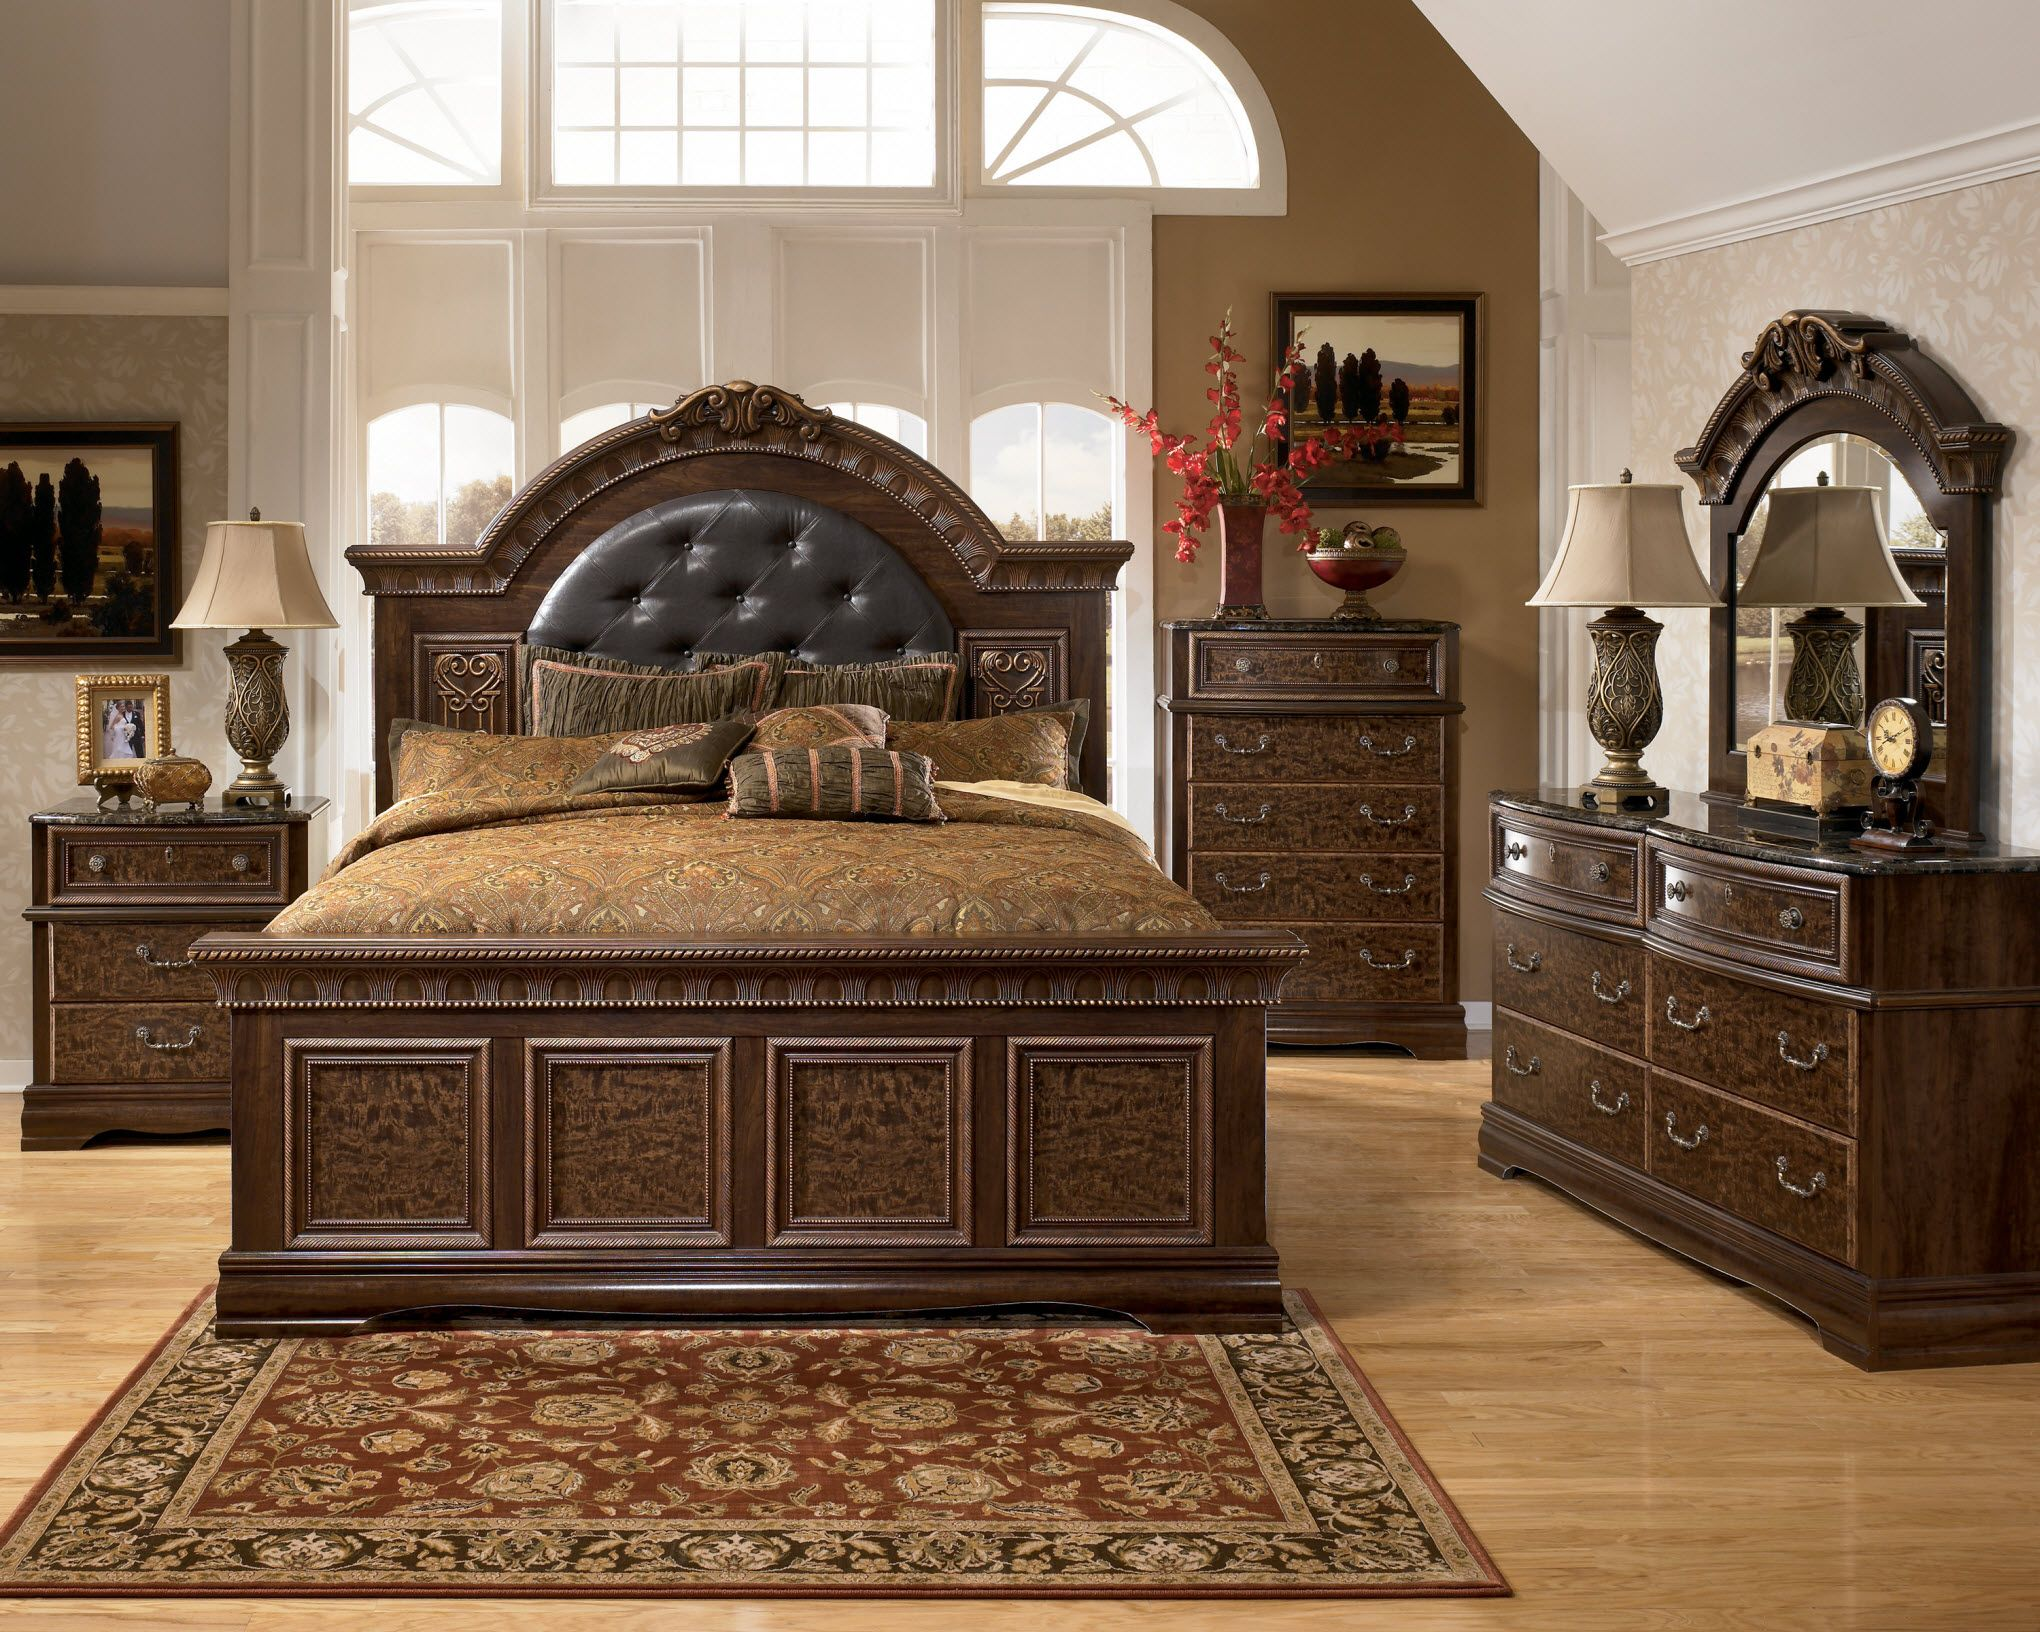 Elegant ashley bedroom furniture for your many years to for Ashley furniture room planner